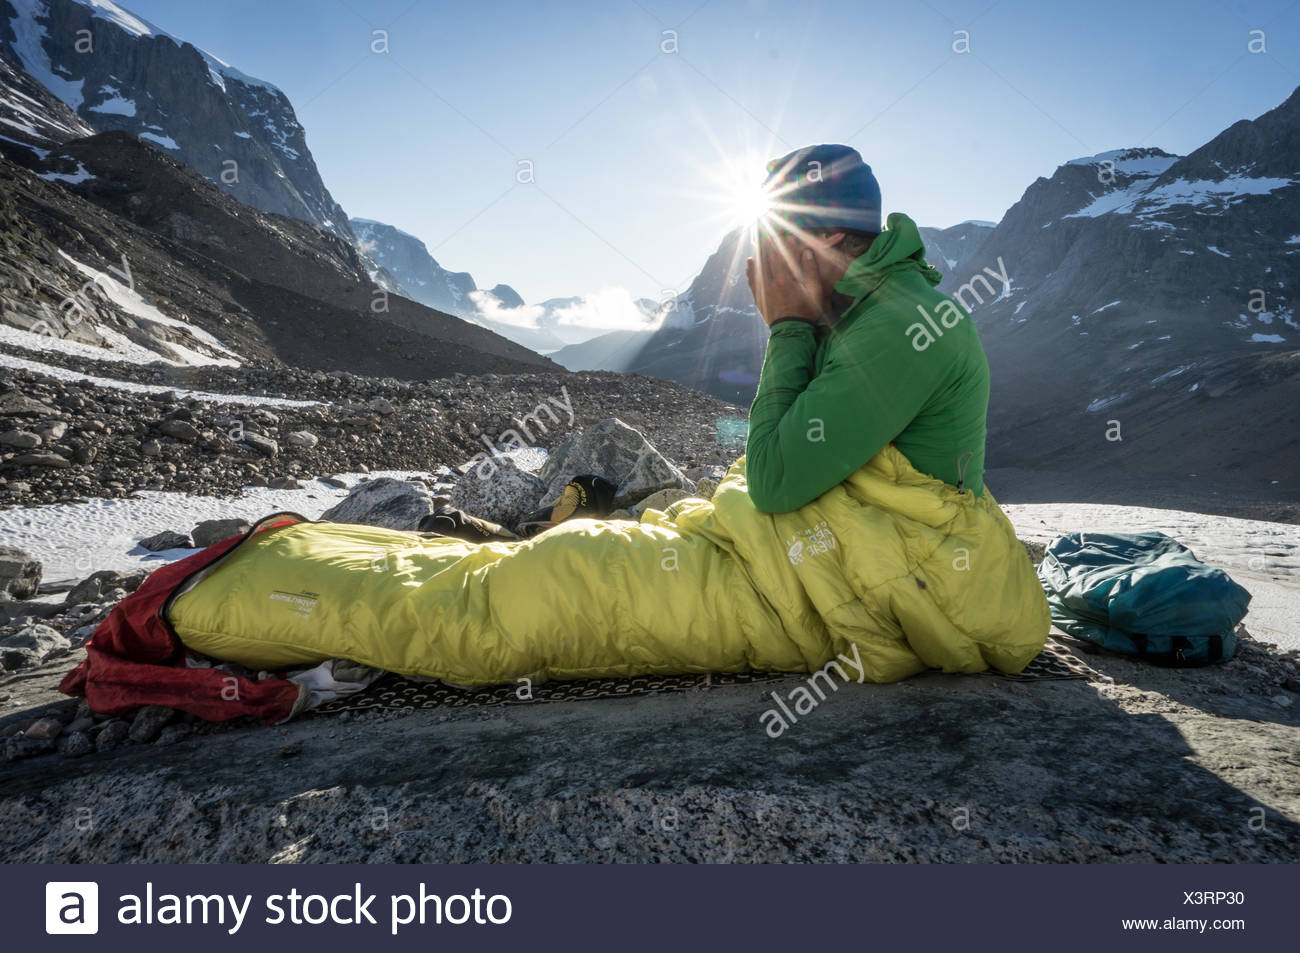 Male hiker waking from a restful sleep in the Skjoldungen range, Greenland. - Stock Image